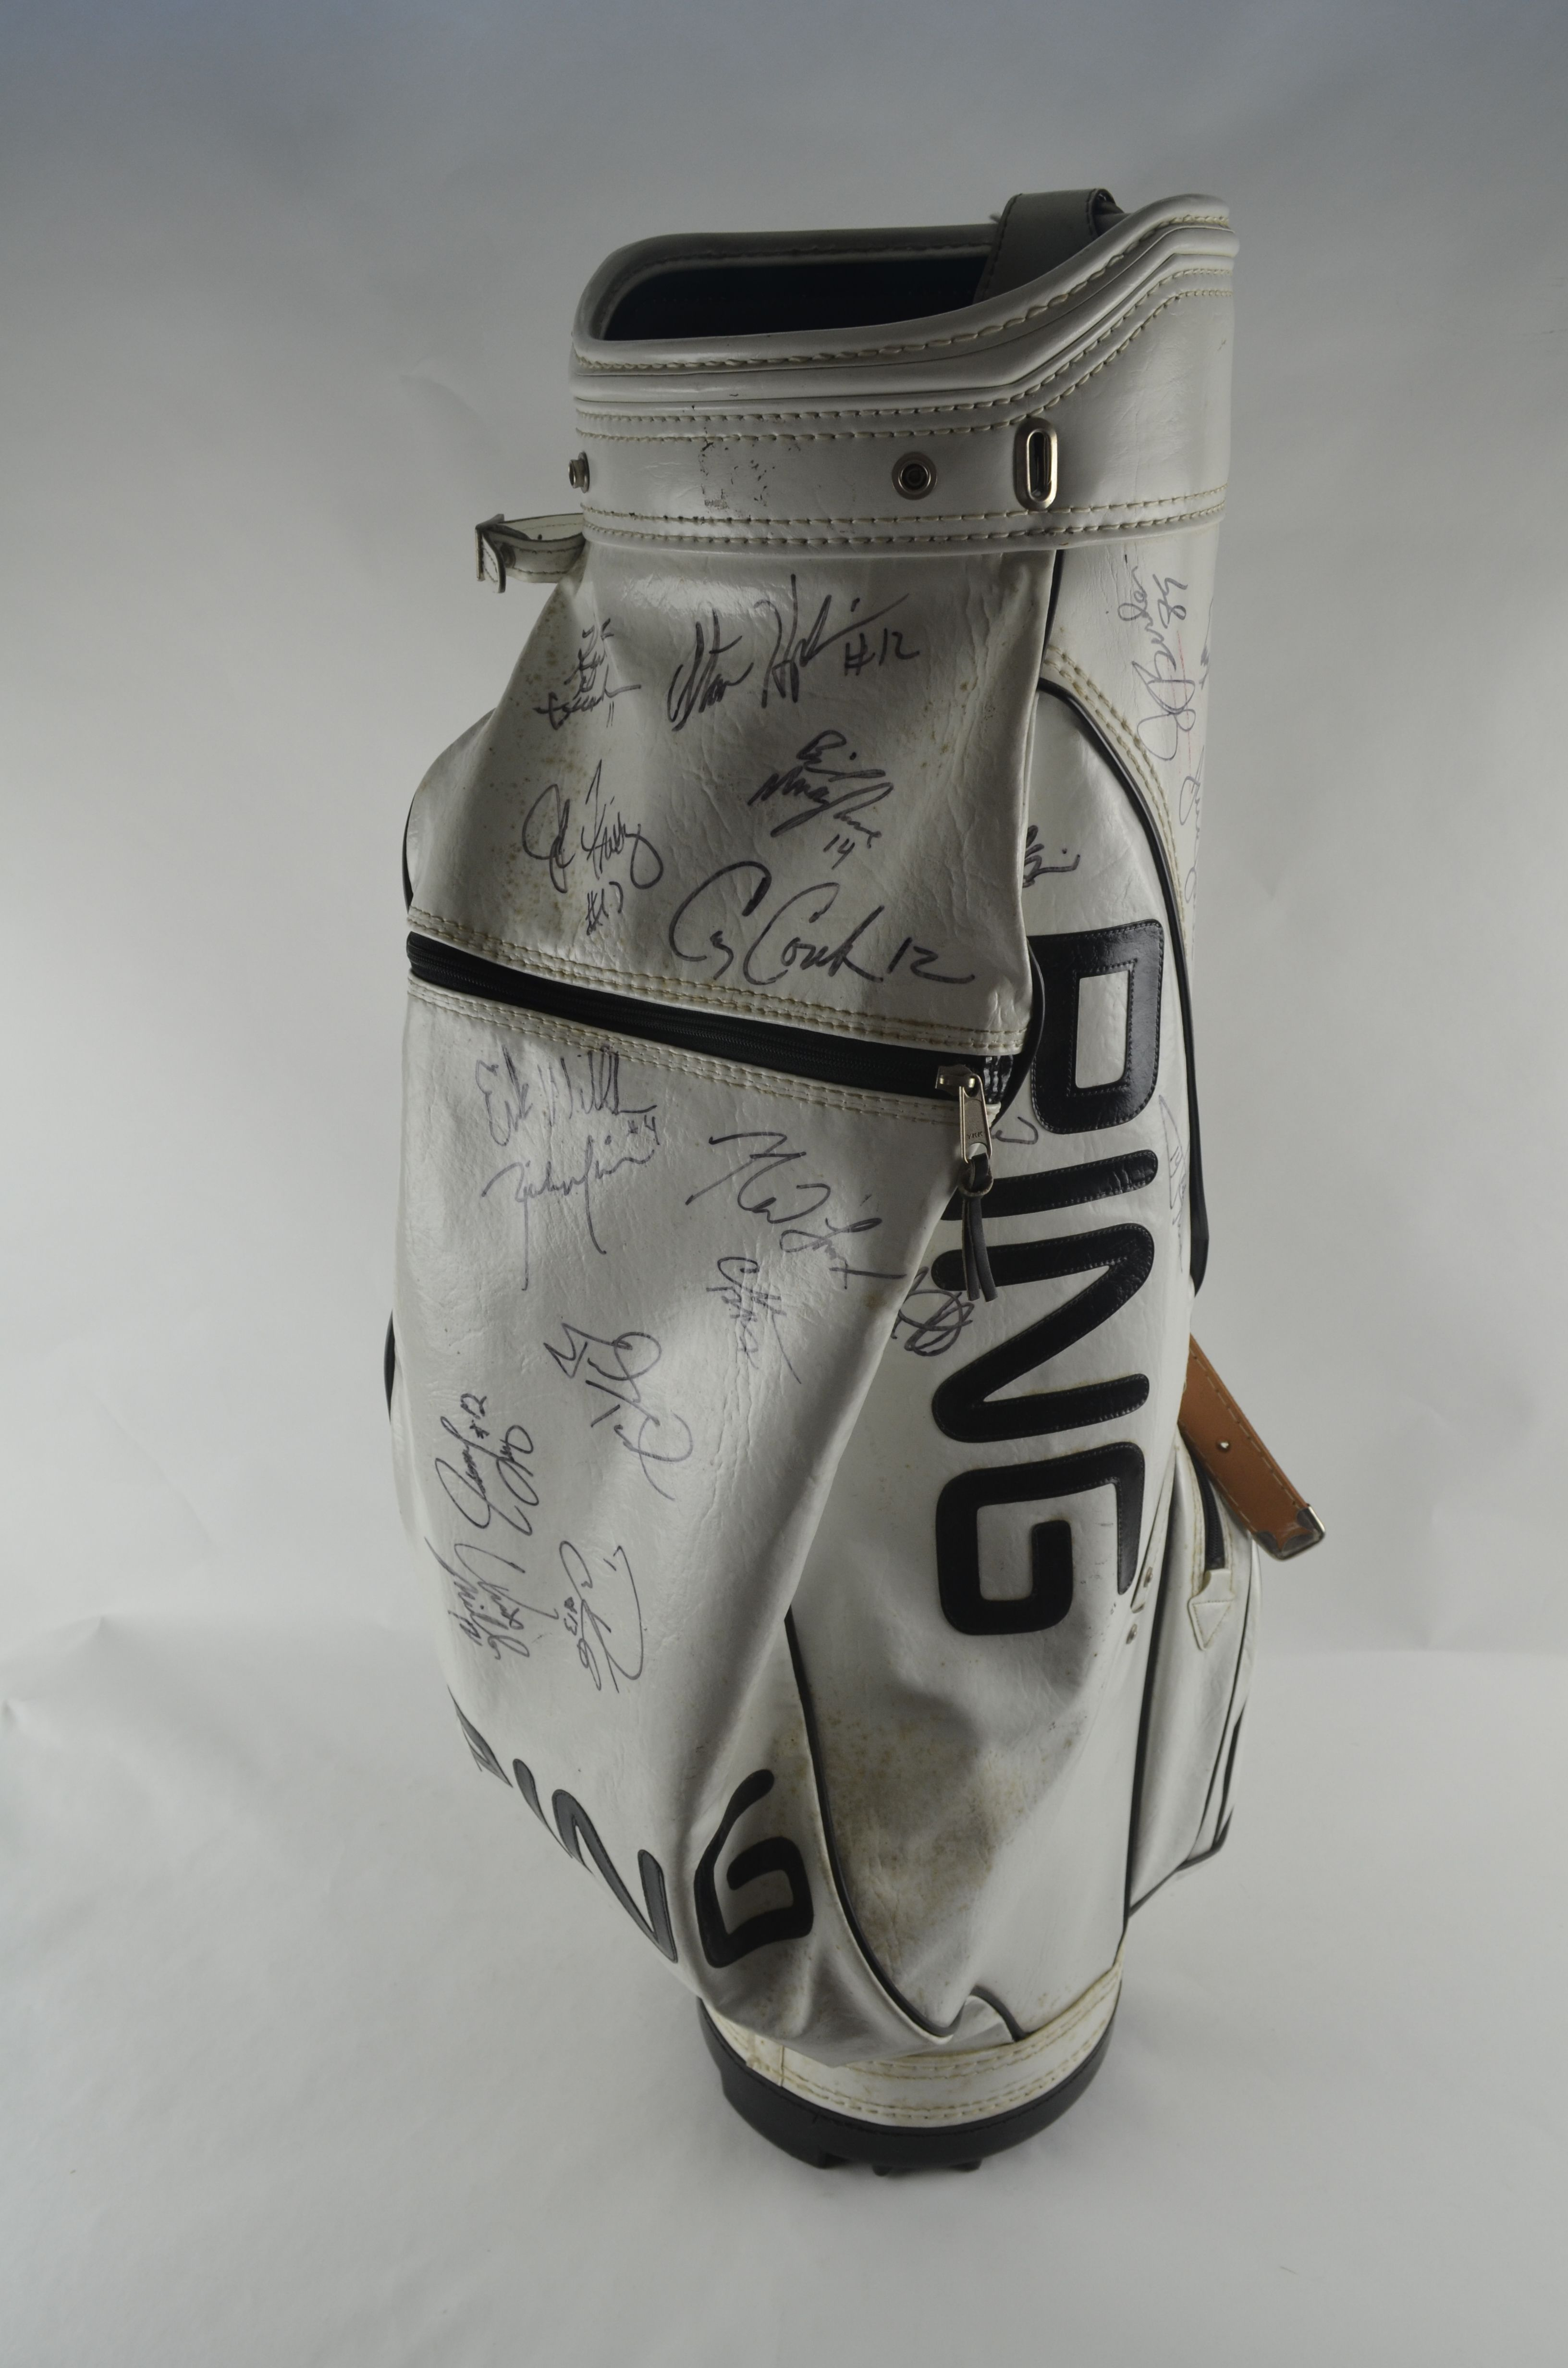 Ping Used Golf Bag From 1997 Neil Lomax Celebrity Qb Shootout